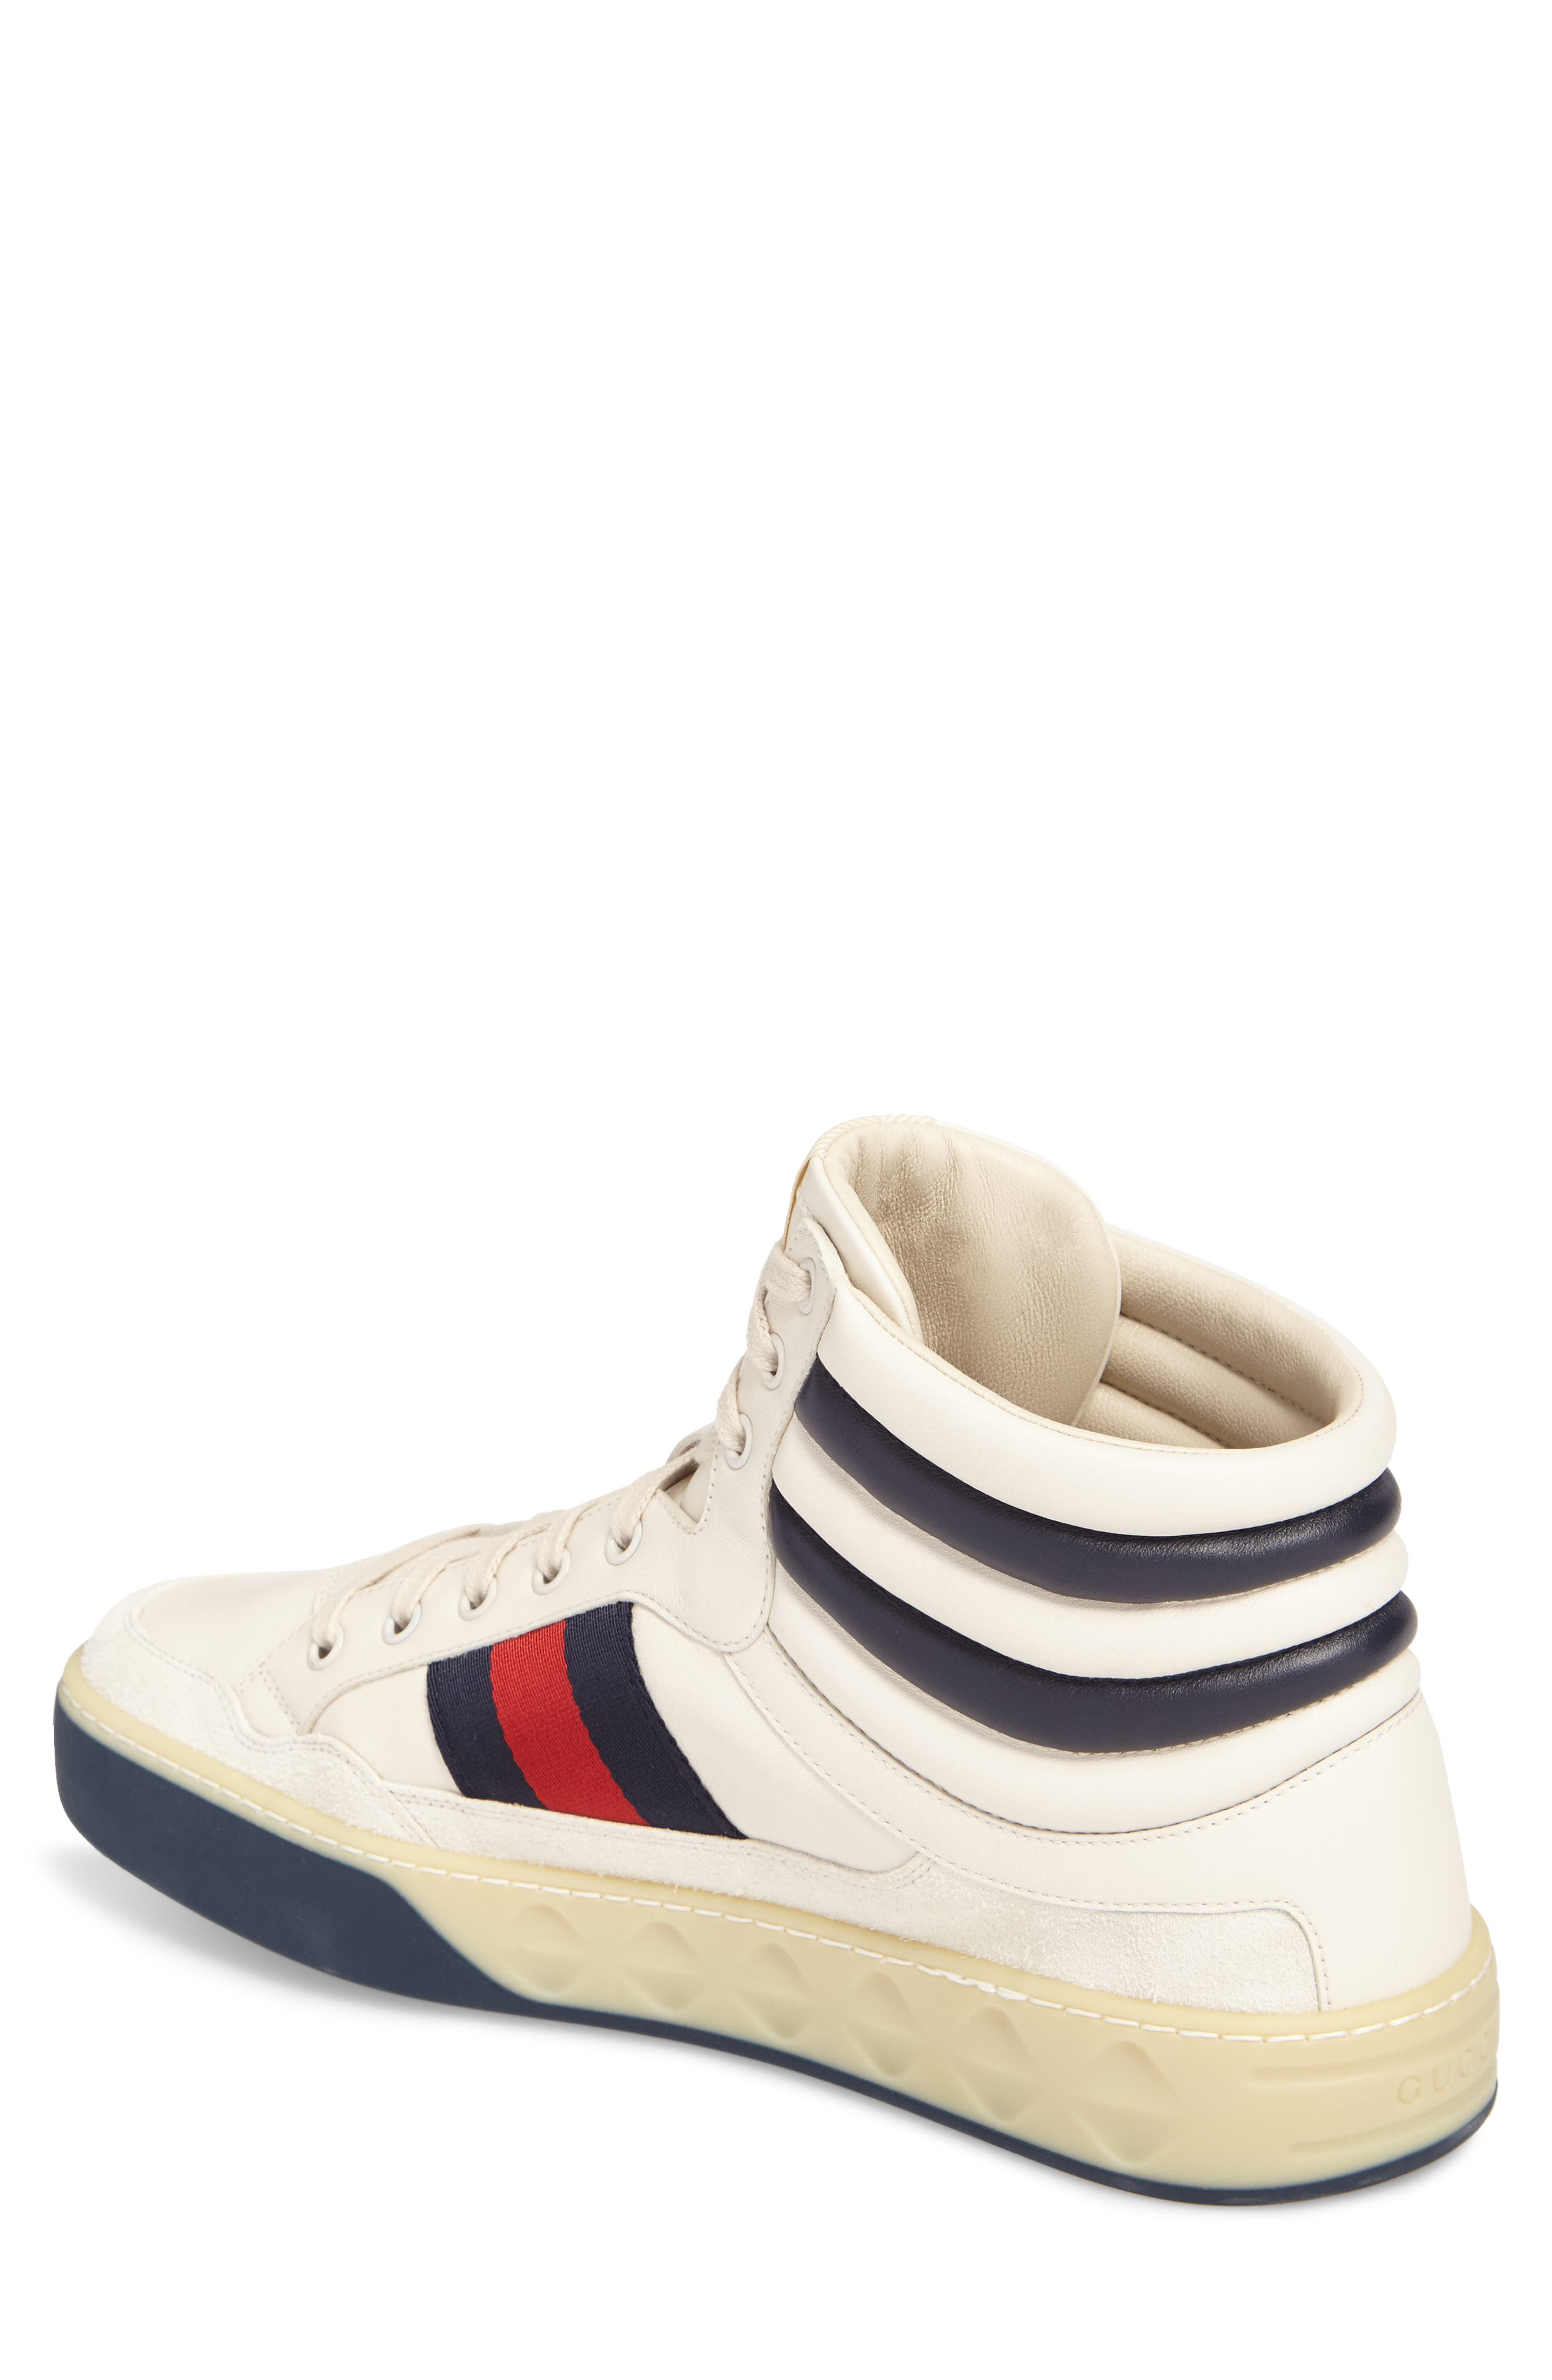 Leather High Top Sneaker,                             Alternate thumbnail 2, color,                             176